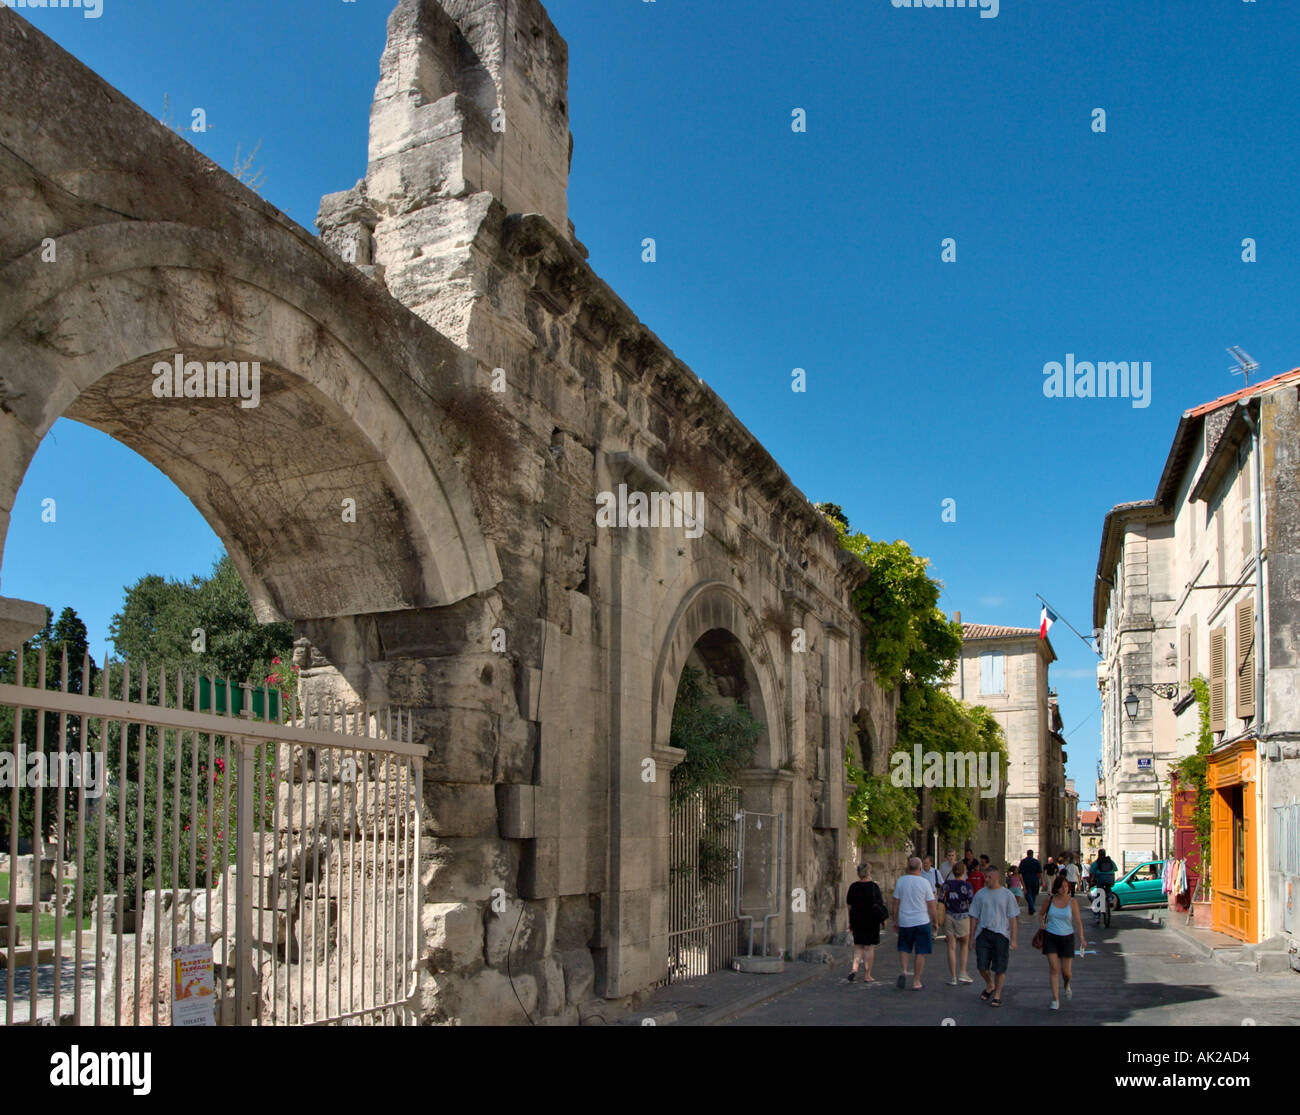 Theatre Antique in Arles, Provence, France - Stock Image